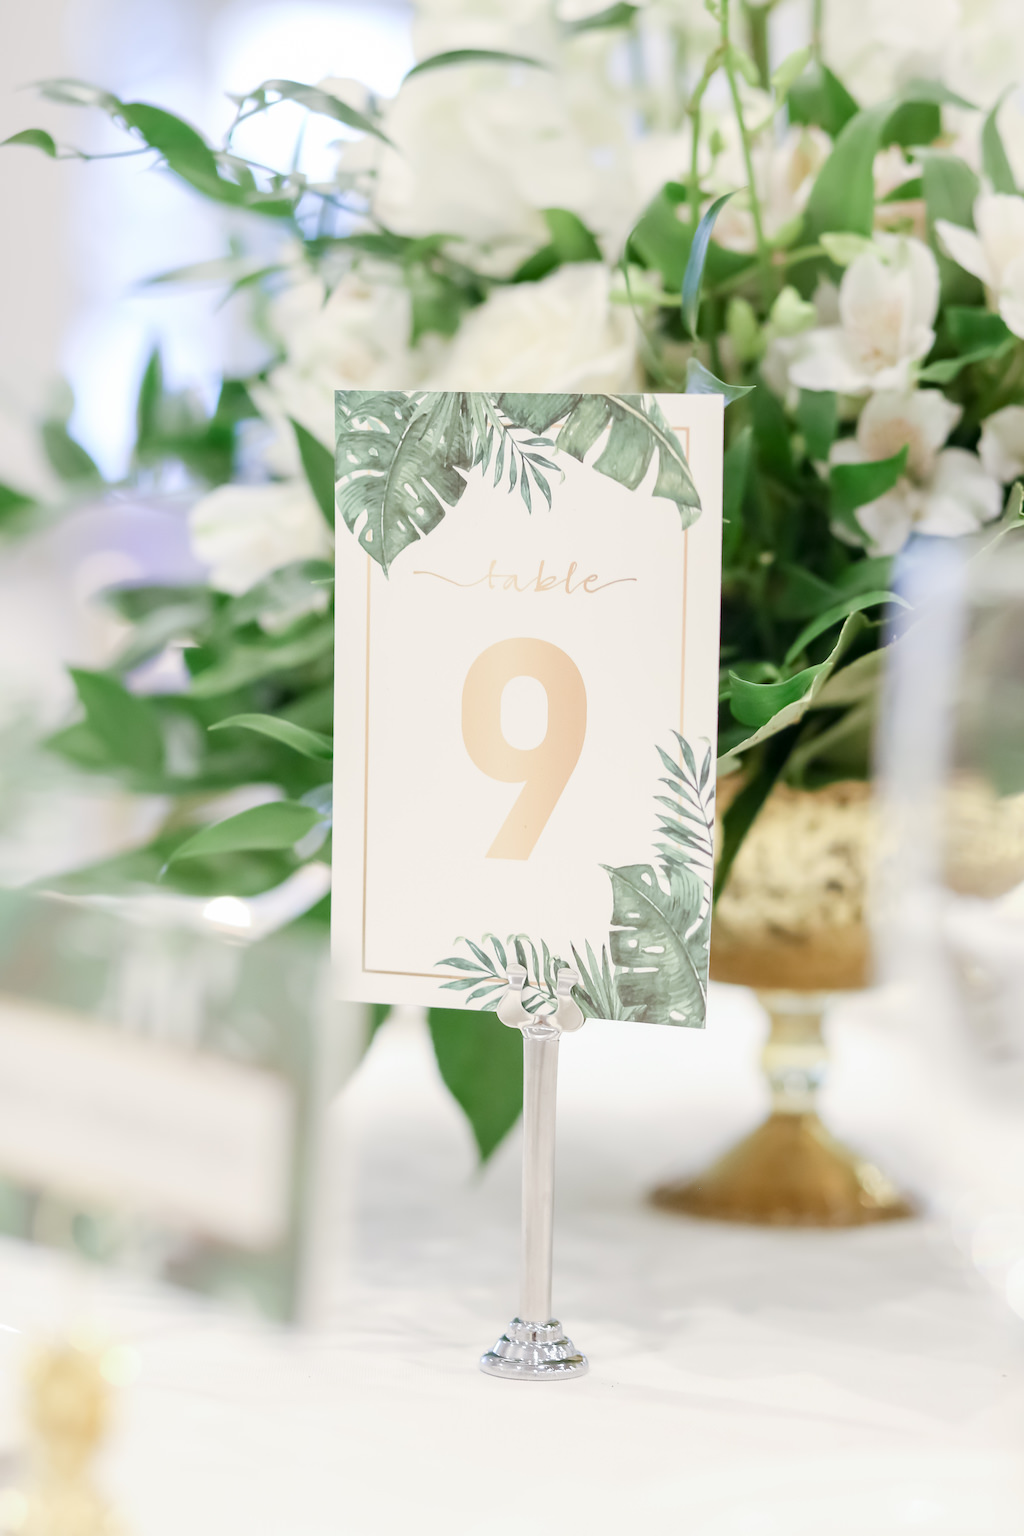 Tropical Elegance Wedding Reception Decor, Palm Leaves and Gold Table Number Signage Wedding Stationery   Tampa Bay Wedding Photographer Lifelong Photography Studios